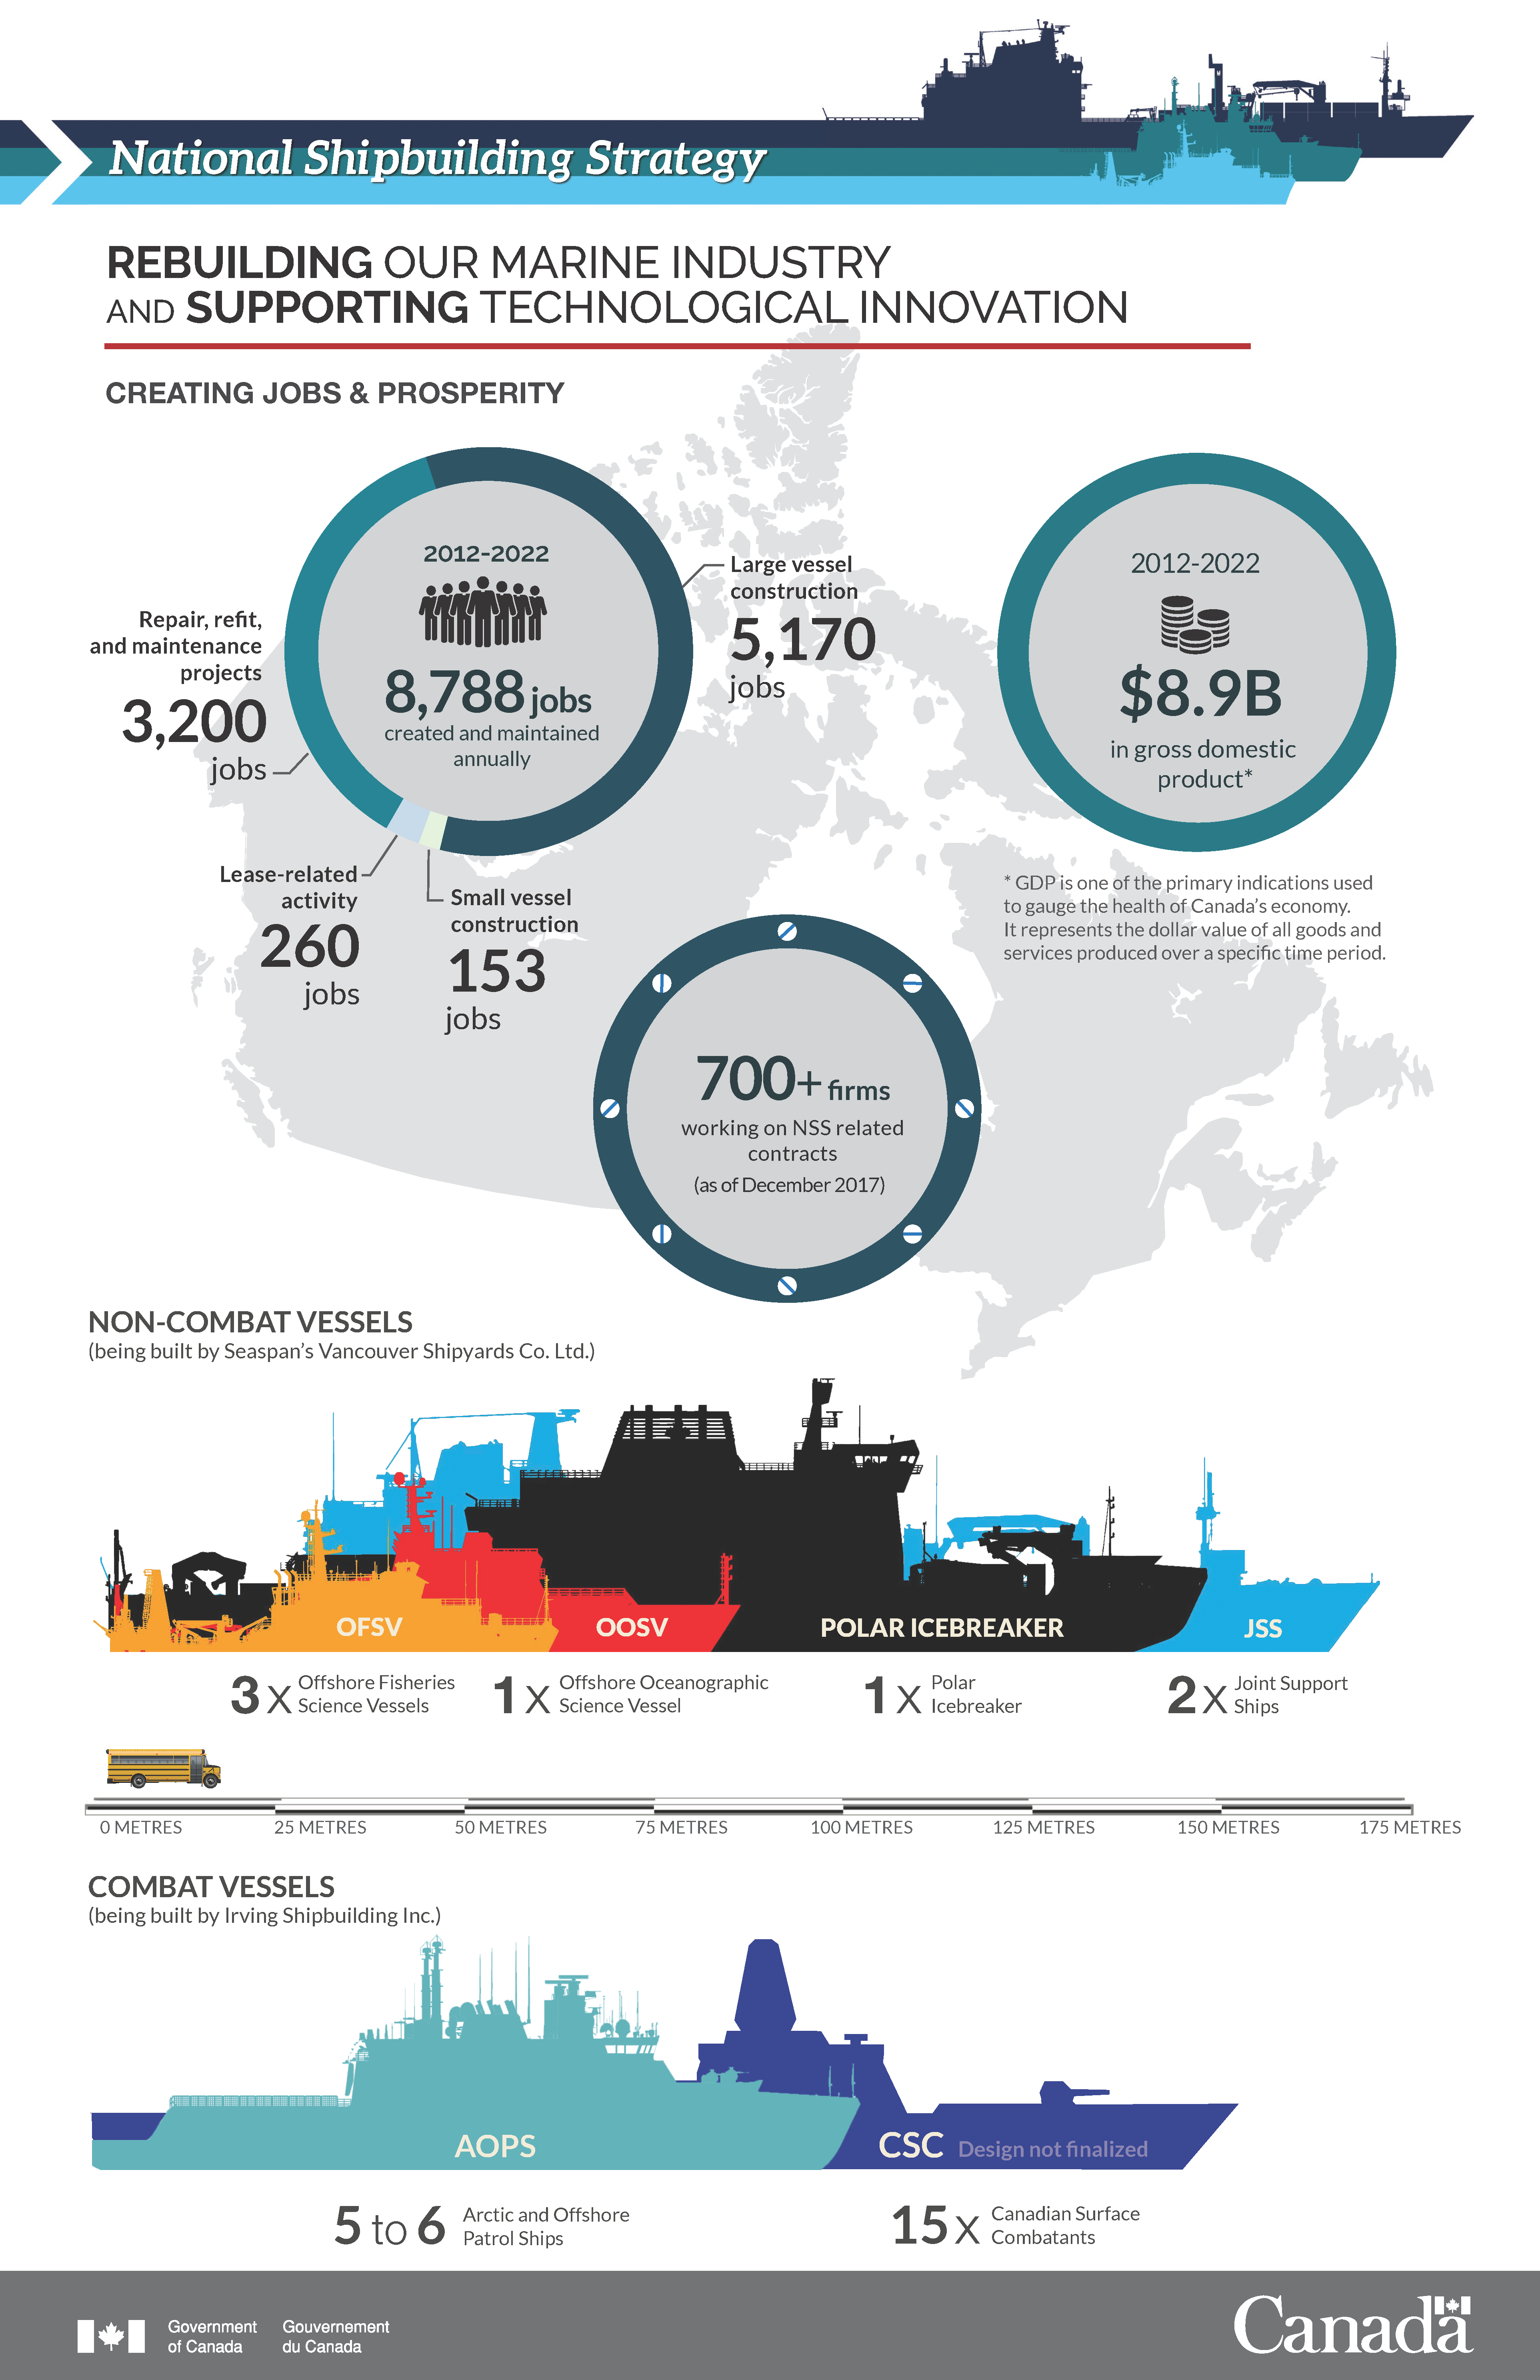 Rebuilding our marine industry and supporiting technological innovation infographic - Description below.